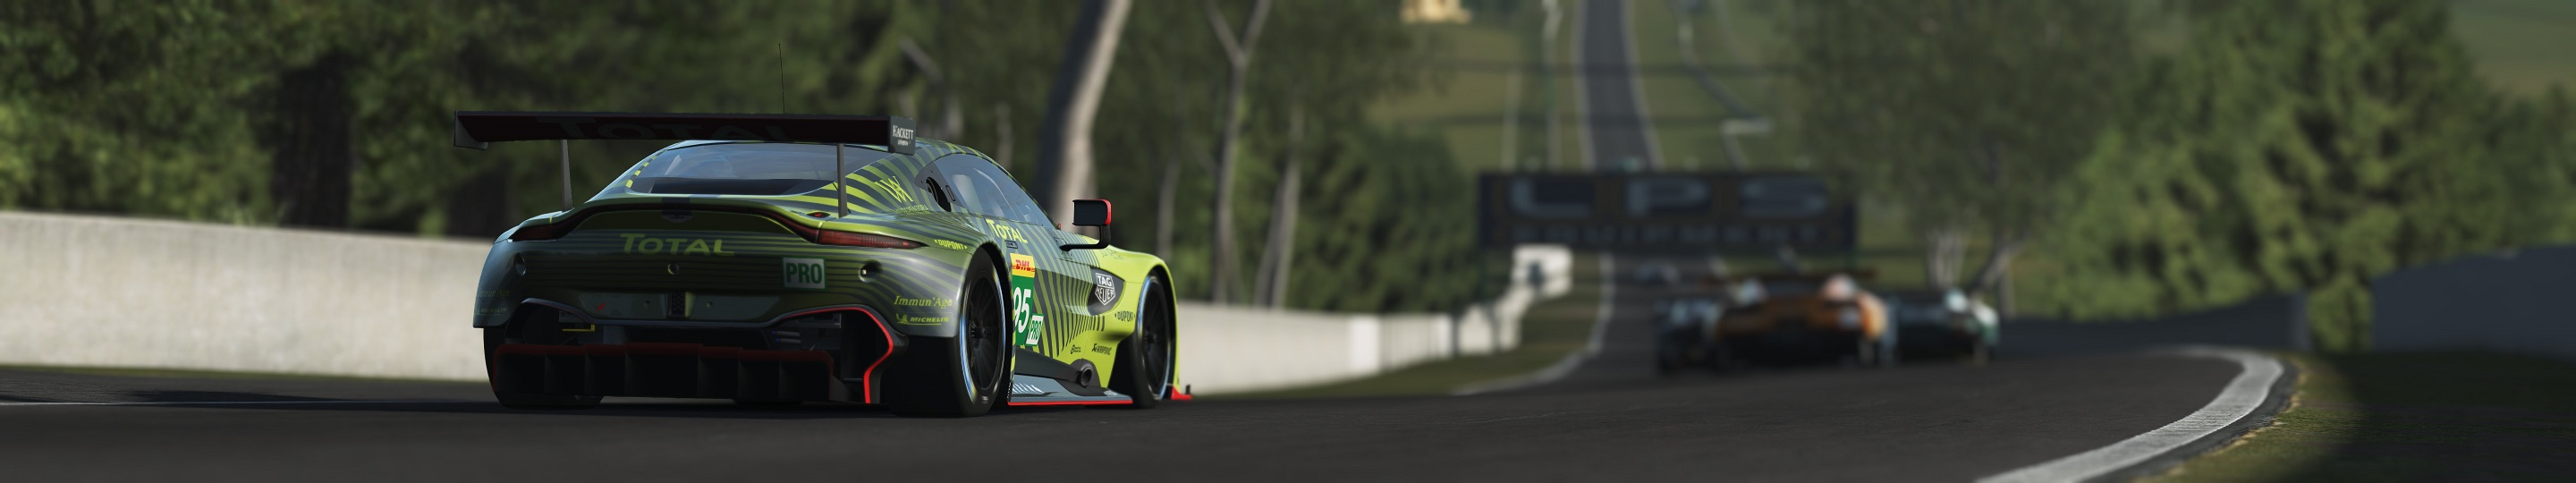 3 rF2 ASTON GTE at BATHURST copy.jpg